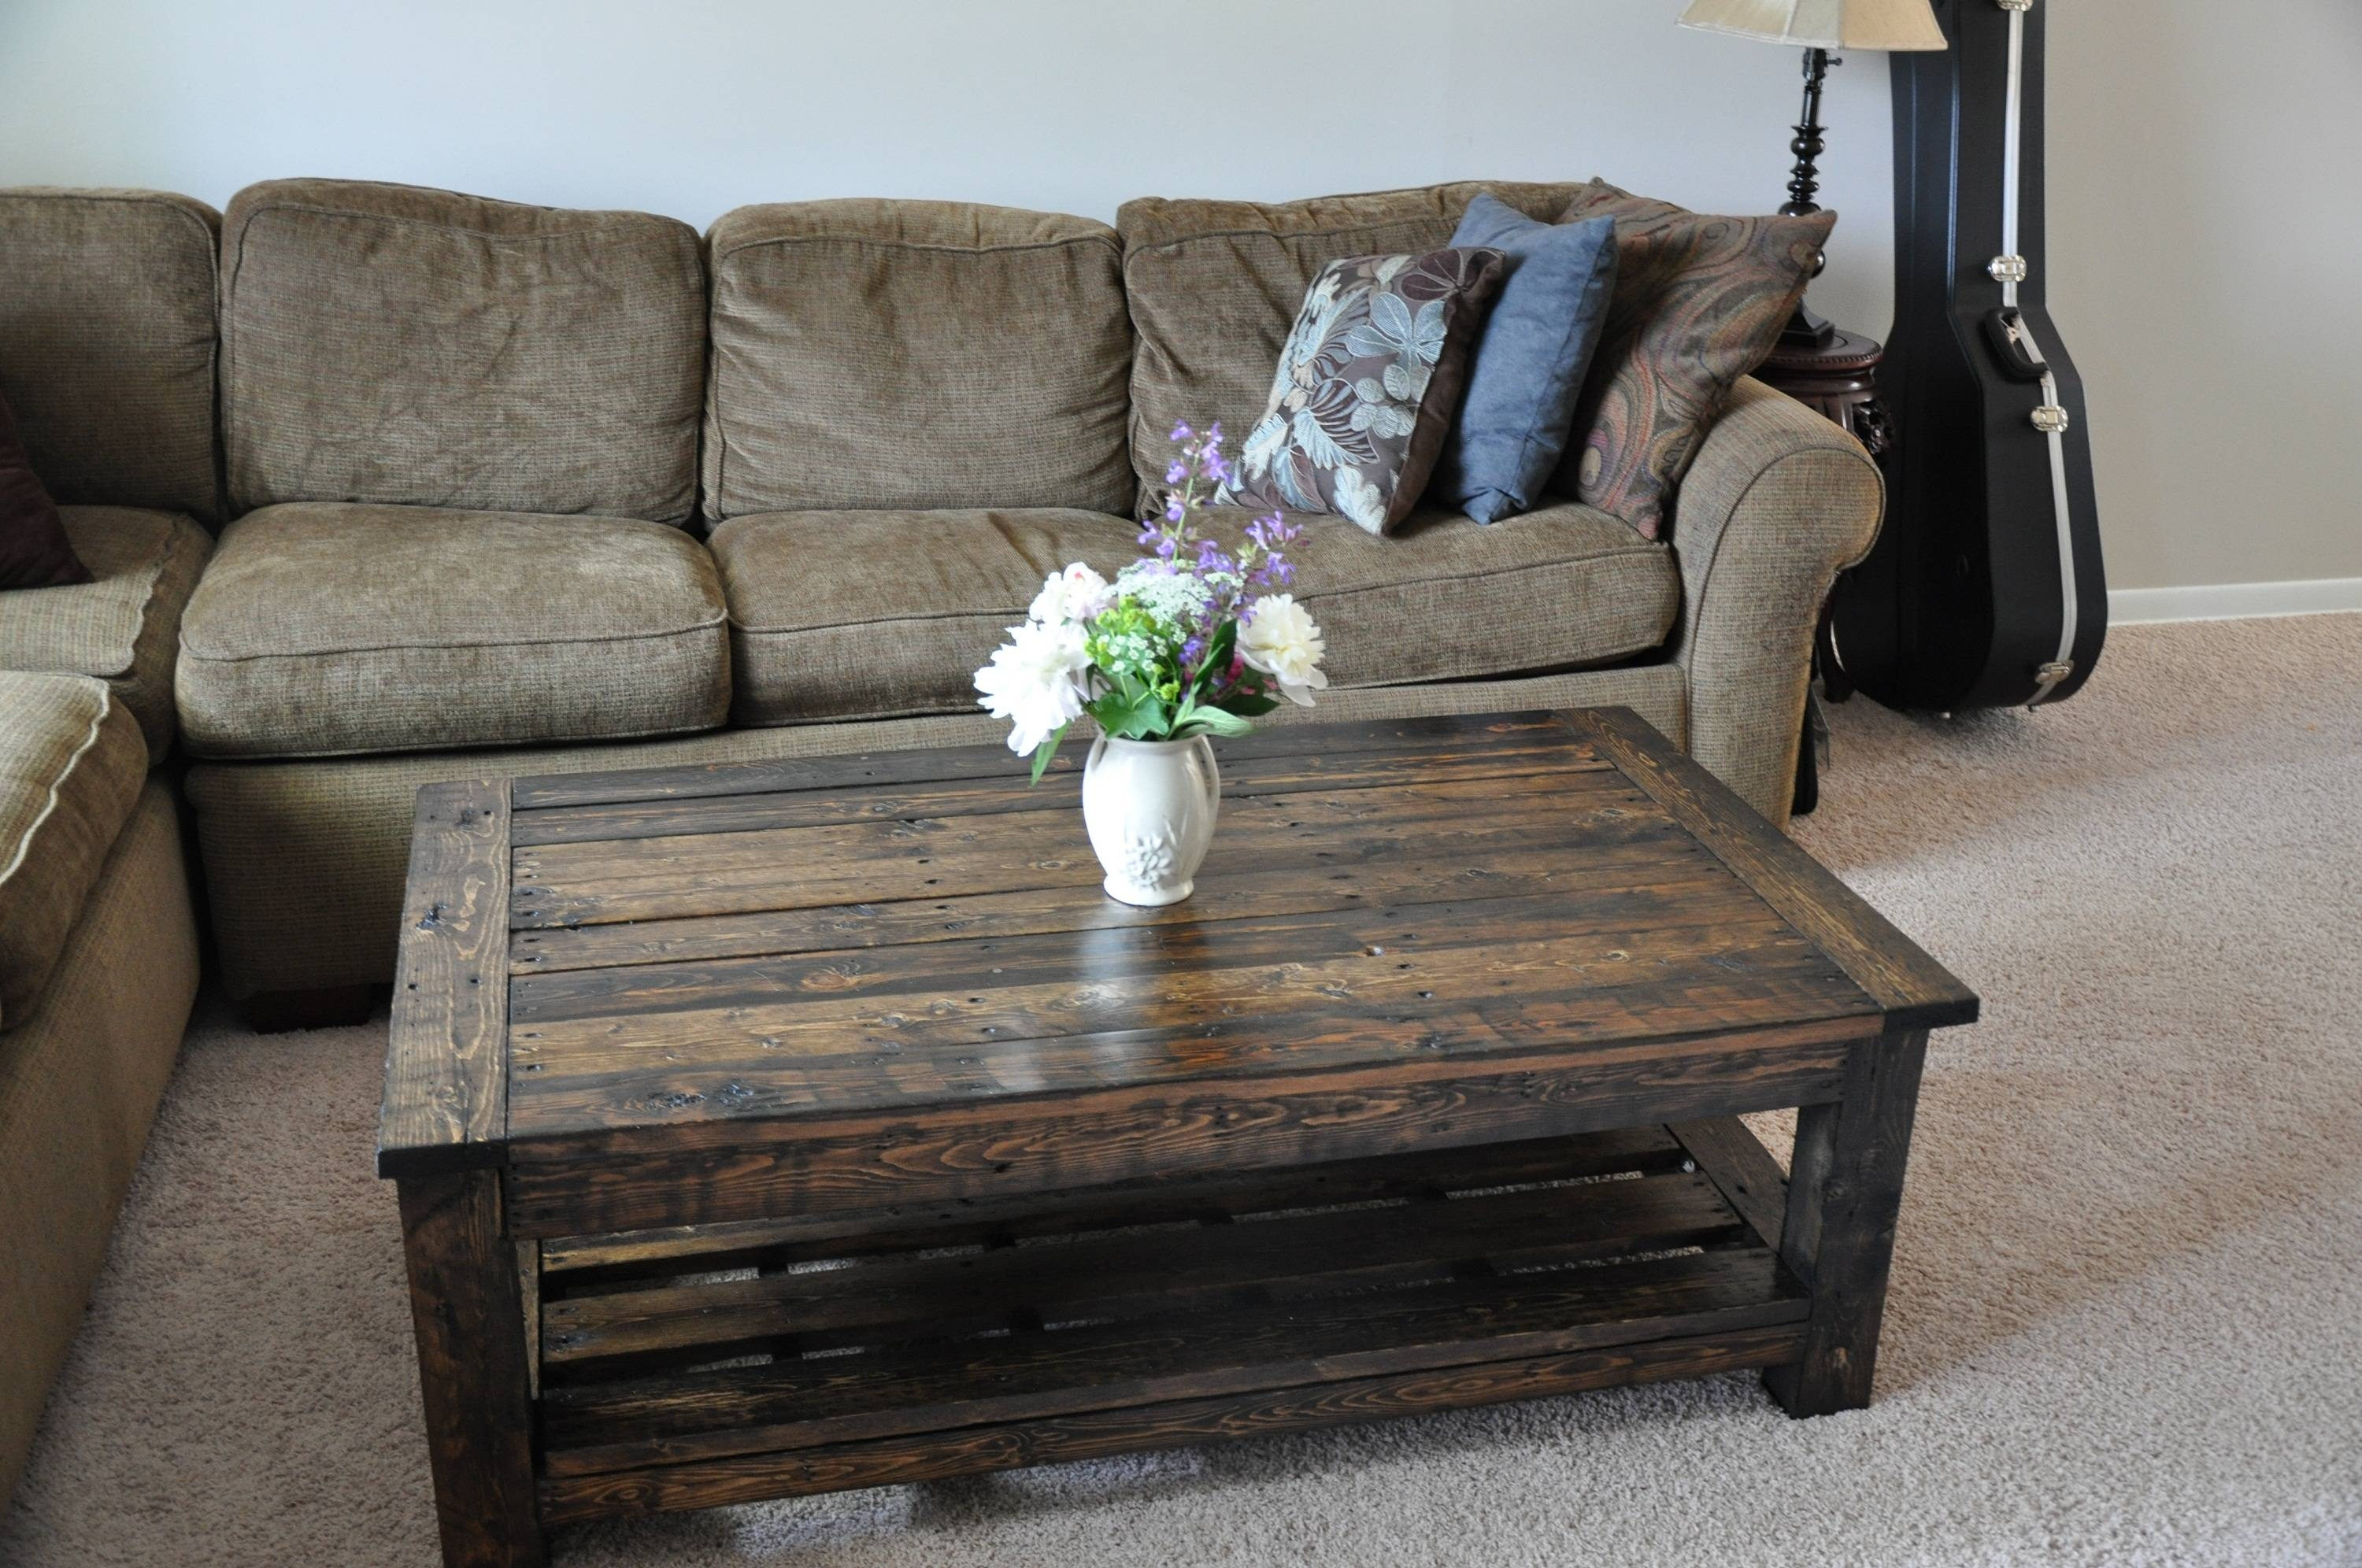 18 Diy Pallet Coffee Tables | Guide Patterns pertaining to Hardwood Coffee Tables With Storage (Image 1 of 30)